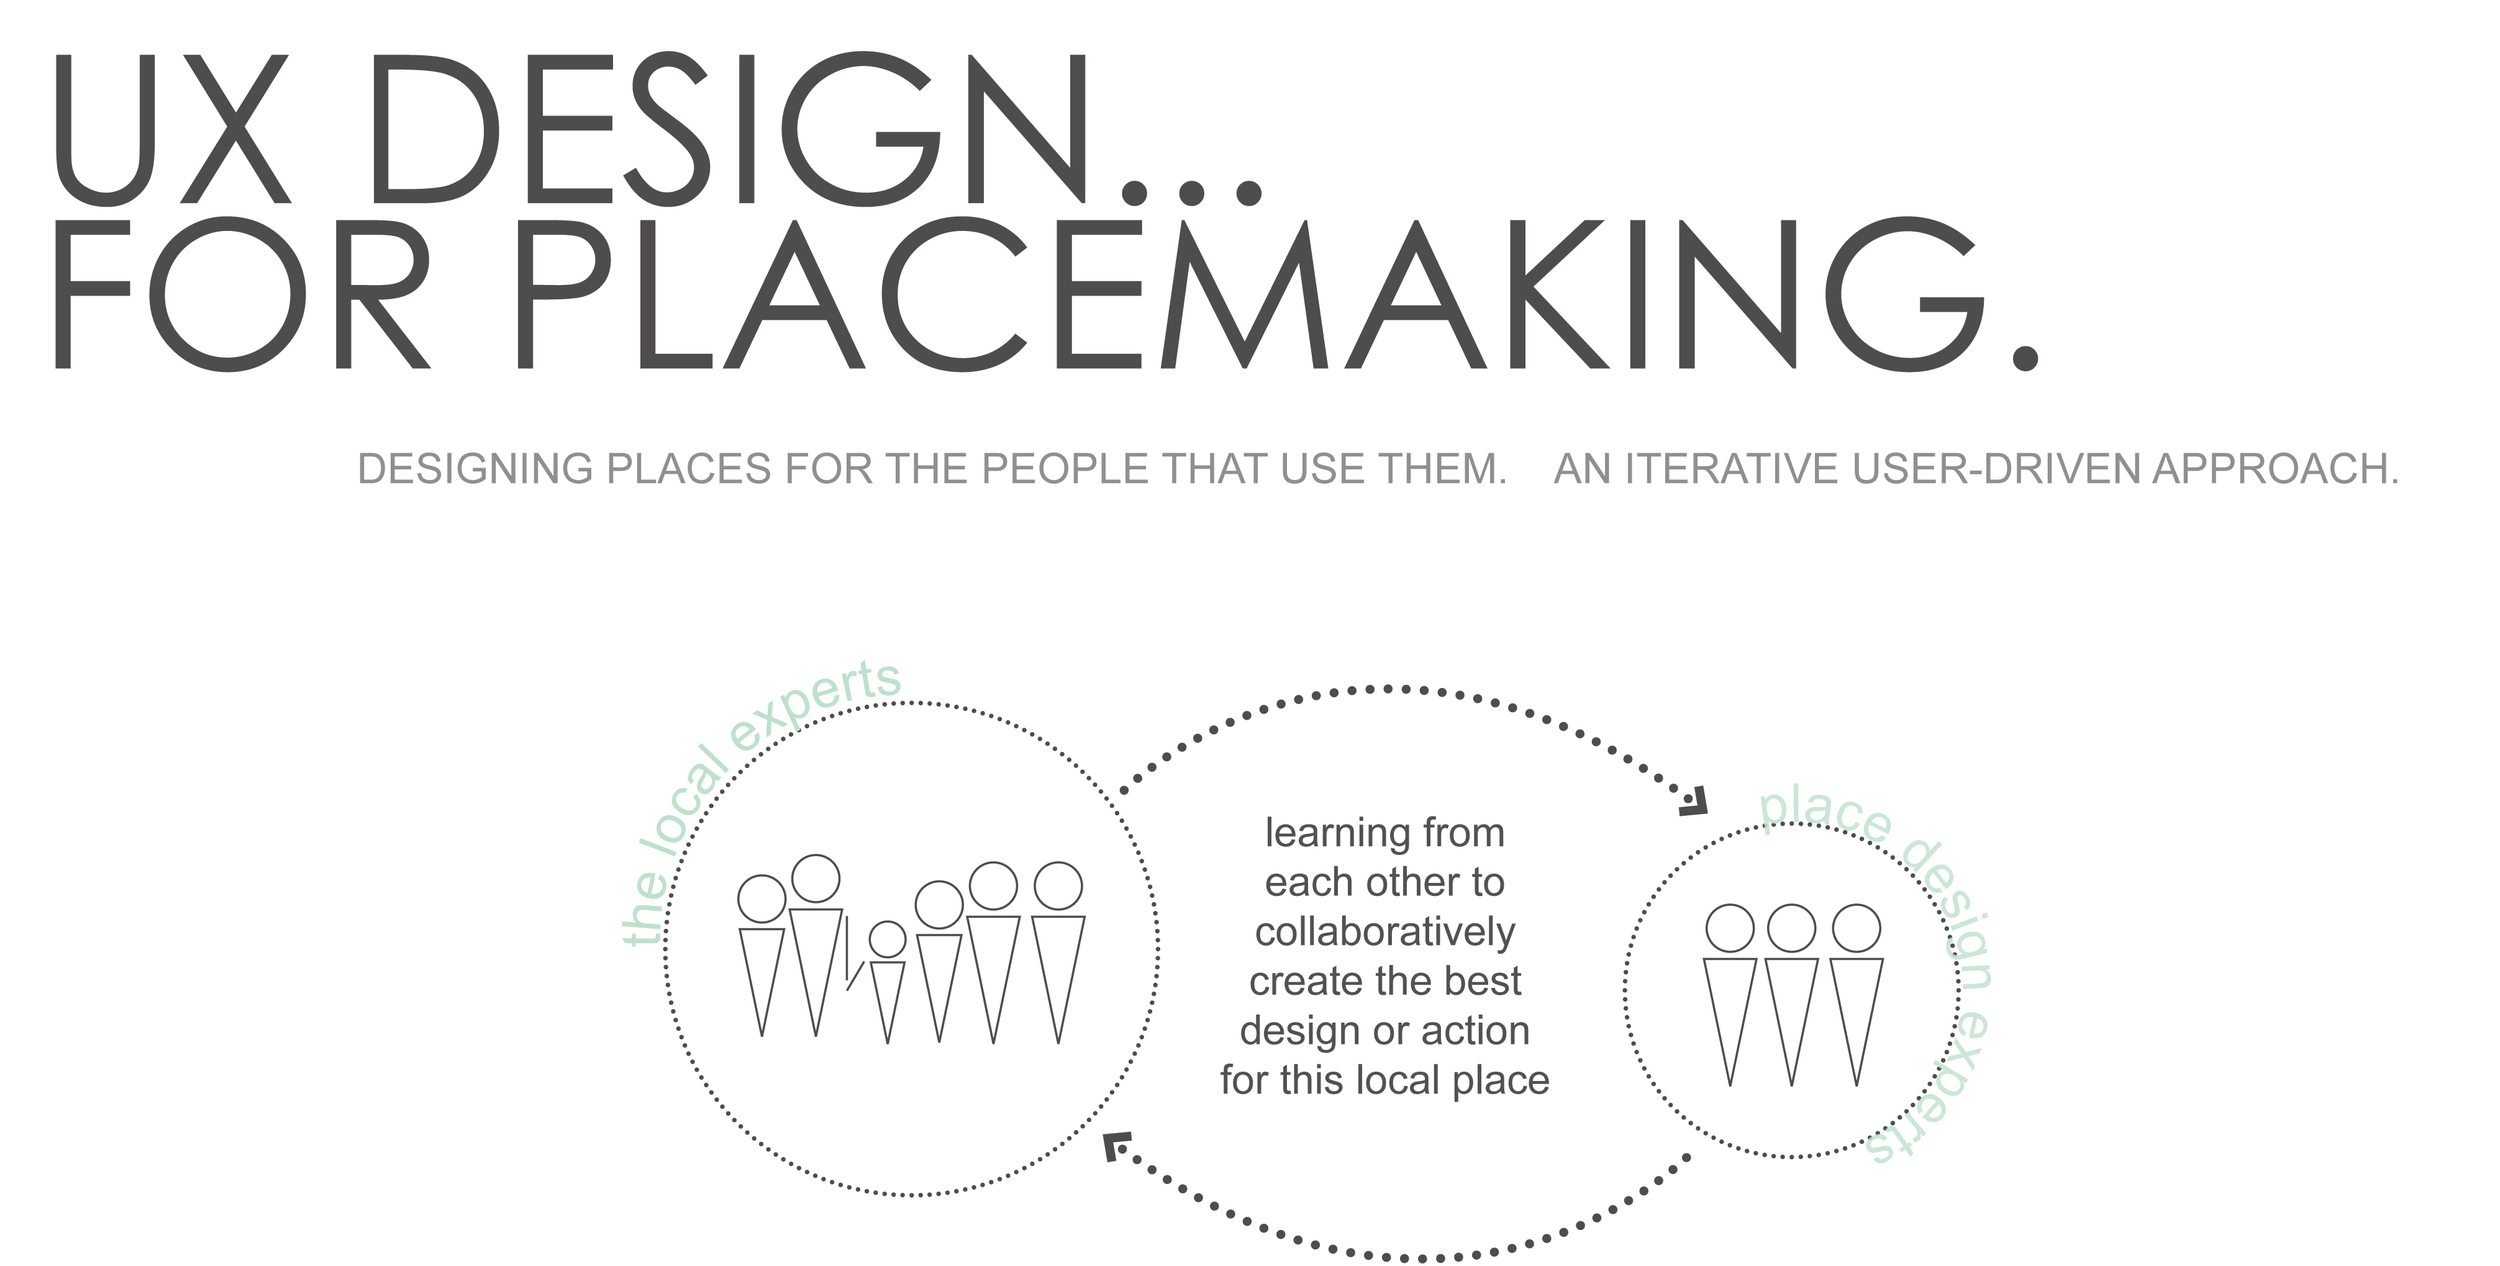 UX Design for Placemaking